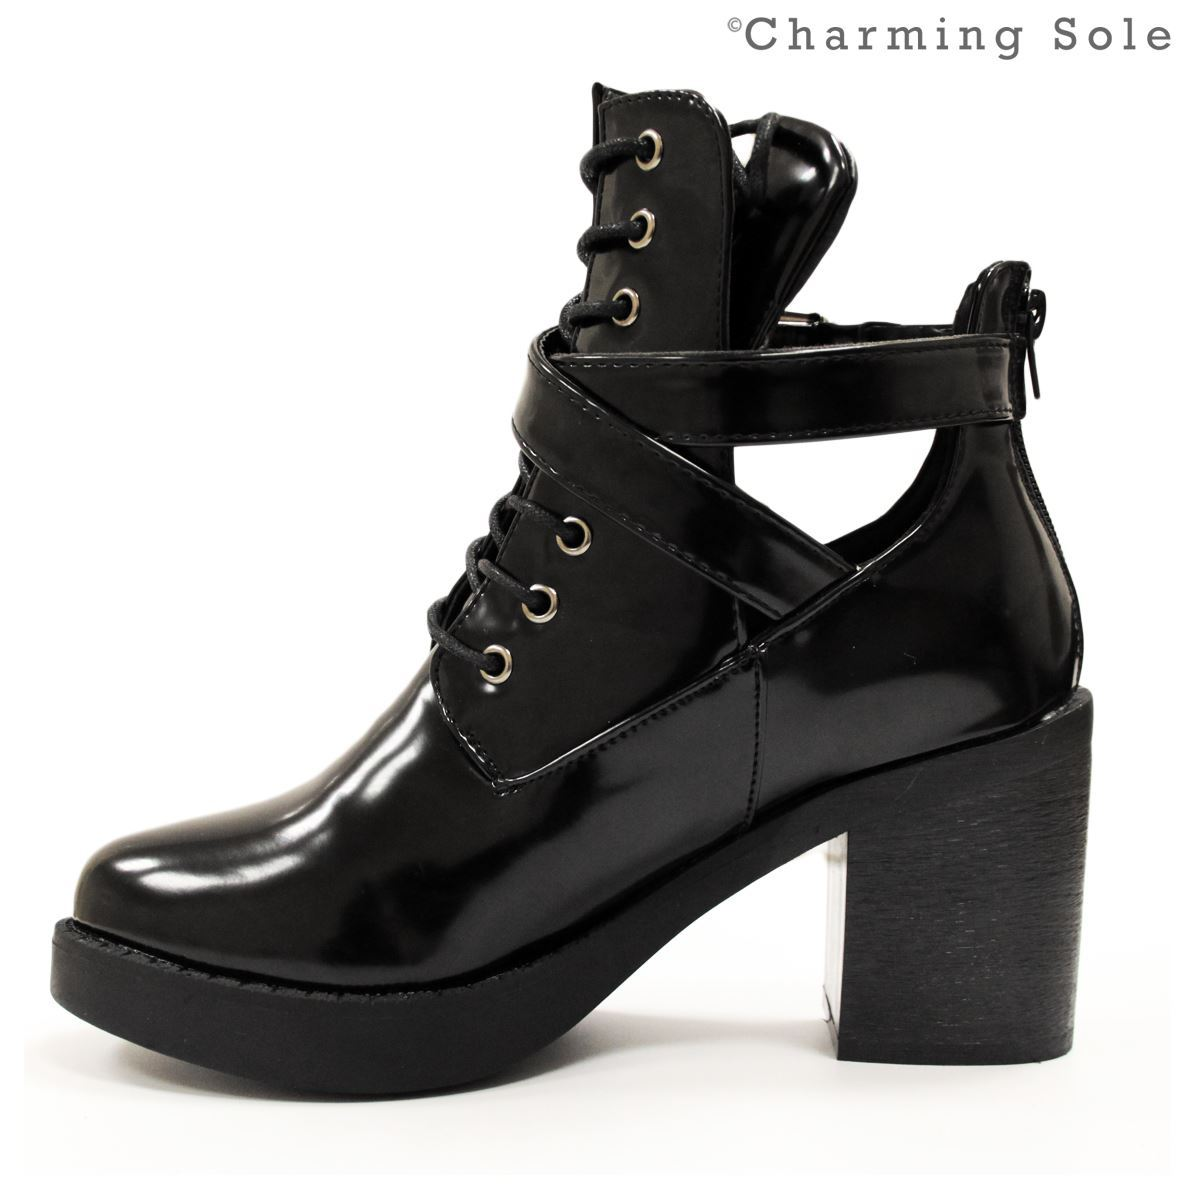 Womens Cleated Sole High Heel Chunky Platform Boots Ladies ...